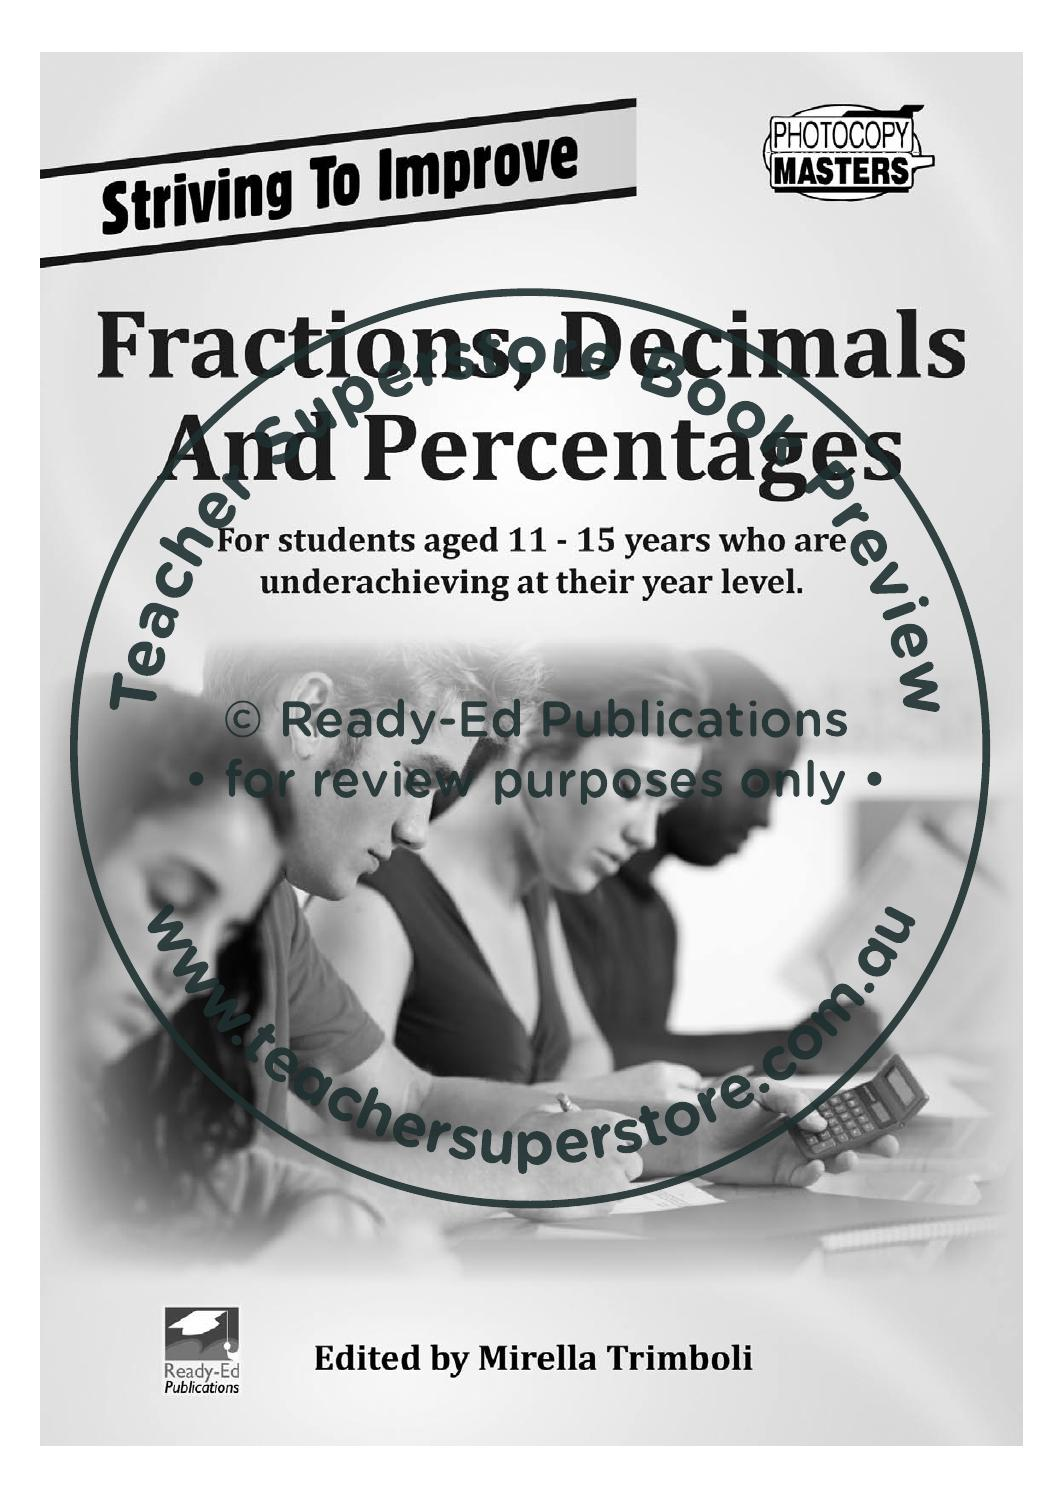 Striving to improve mathematics fractions decimals striving to improve mathematics fractions decimals percentages by teacher superstore issuu biocorpaavc Choice Image